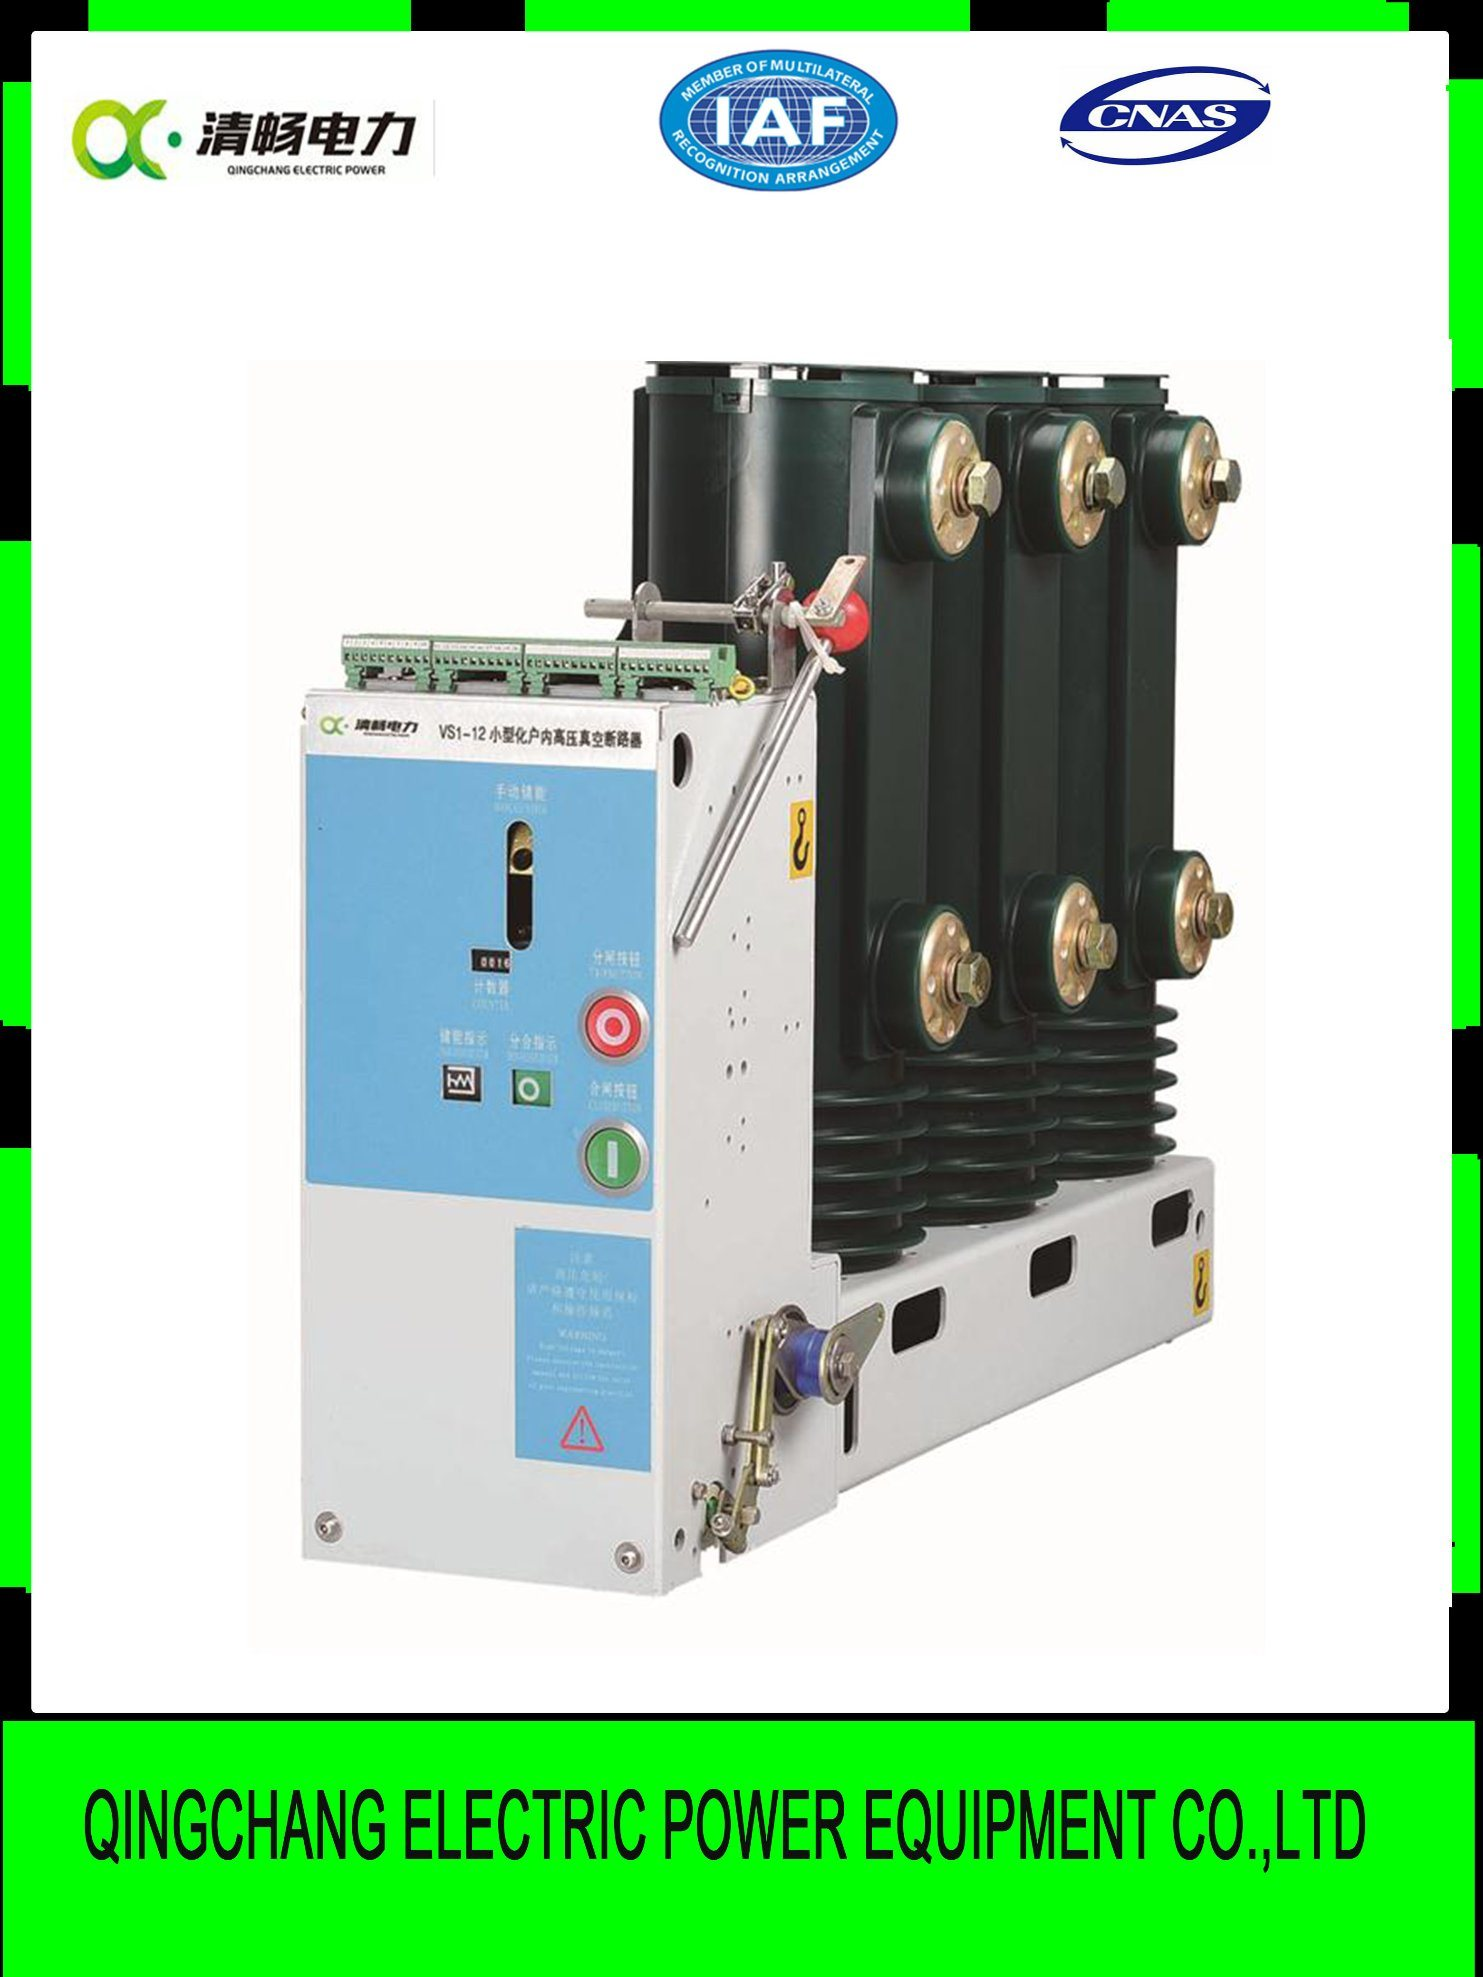 Medium Voltage Withdrawable/Drawout Vacuum Circuit-Breaker